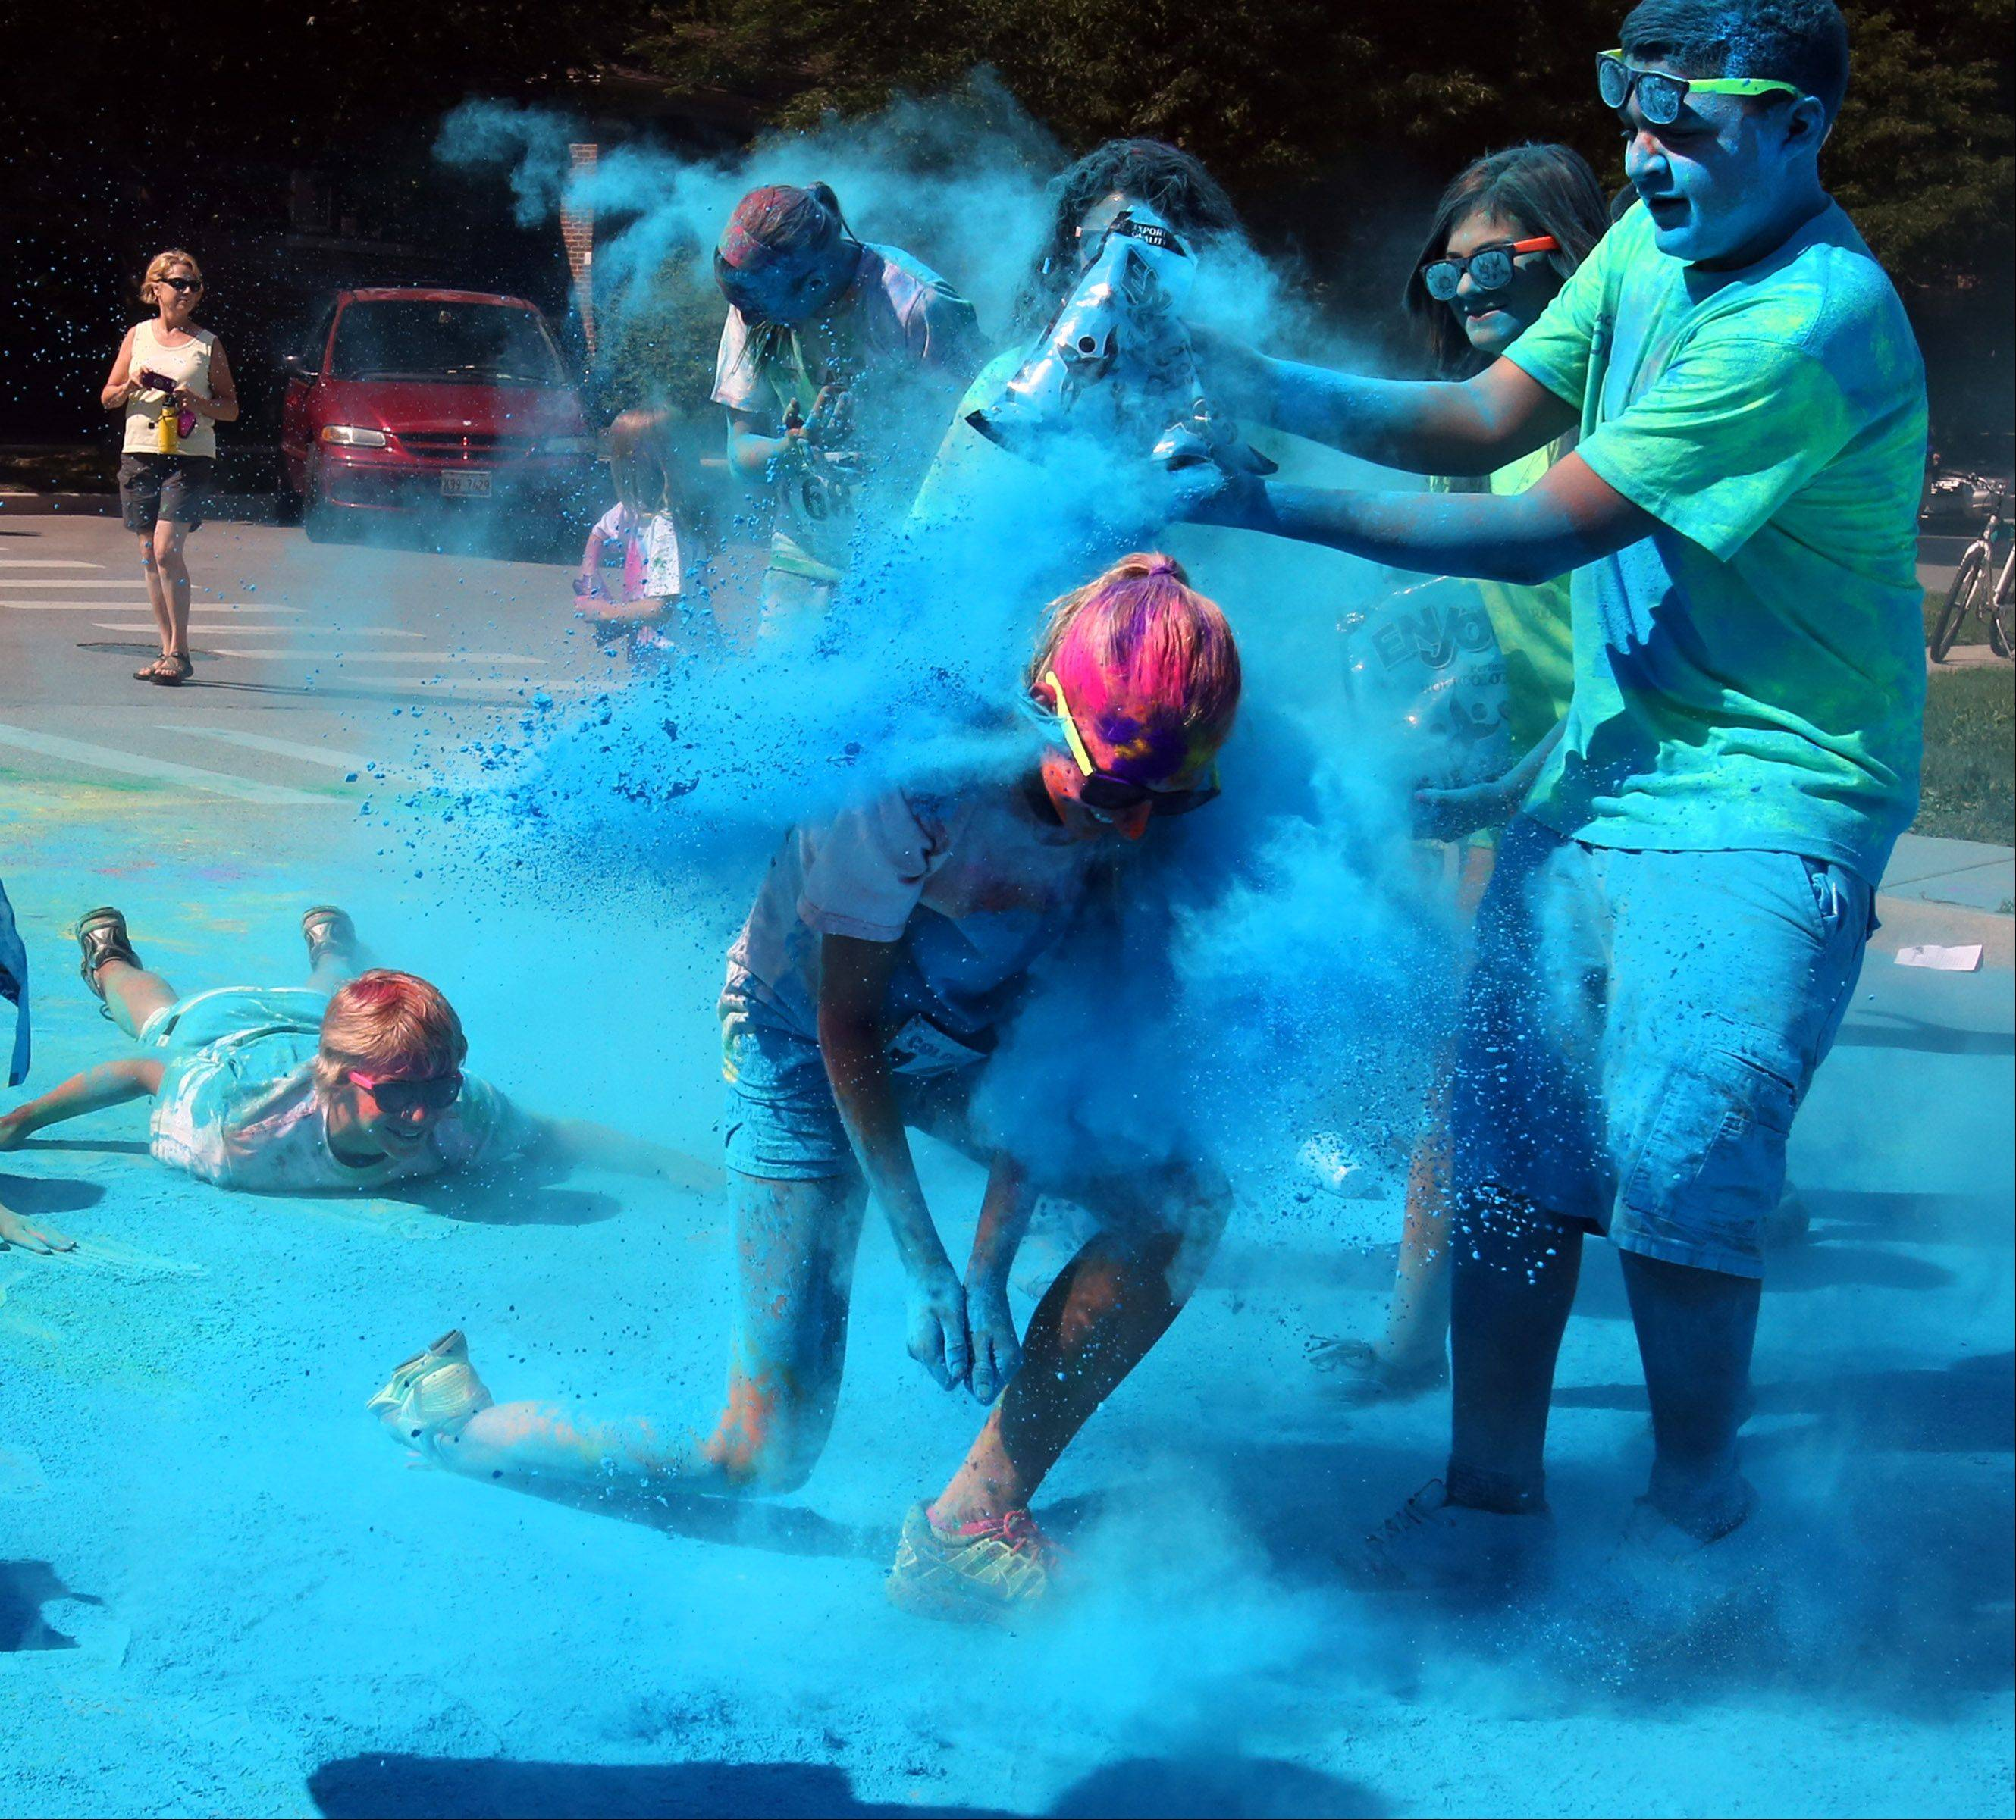 Allie Renner, 13, of Cary, is doused with blue powder by volunteers near the finish of the first Color Blast 5k run in Arlington Heights Saturday.